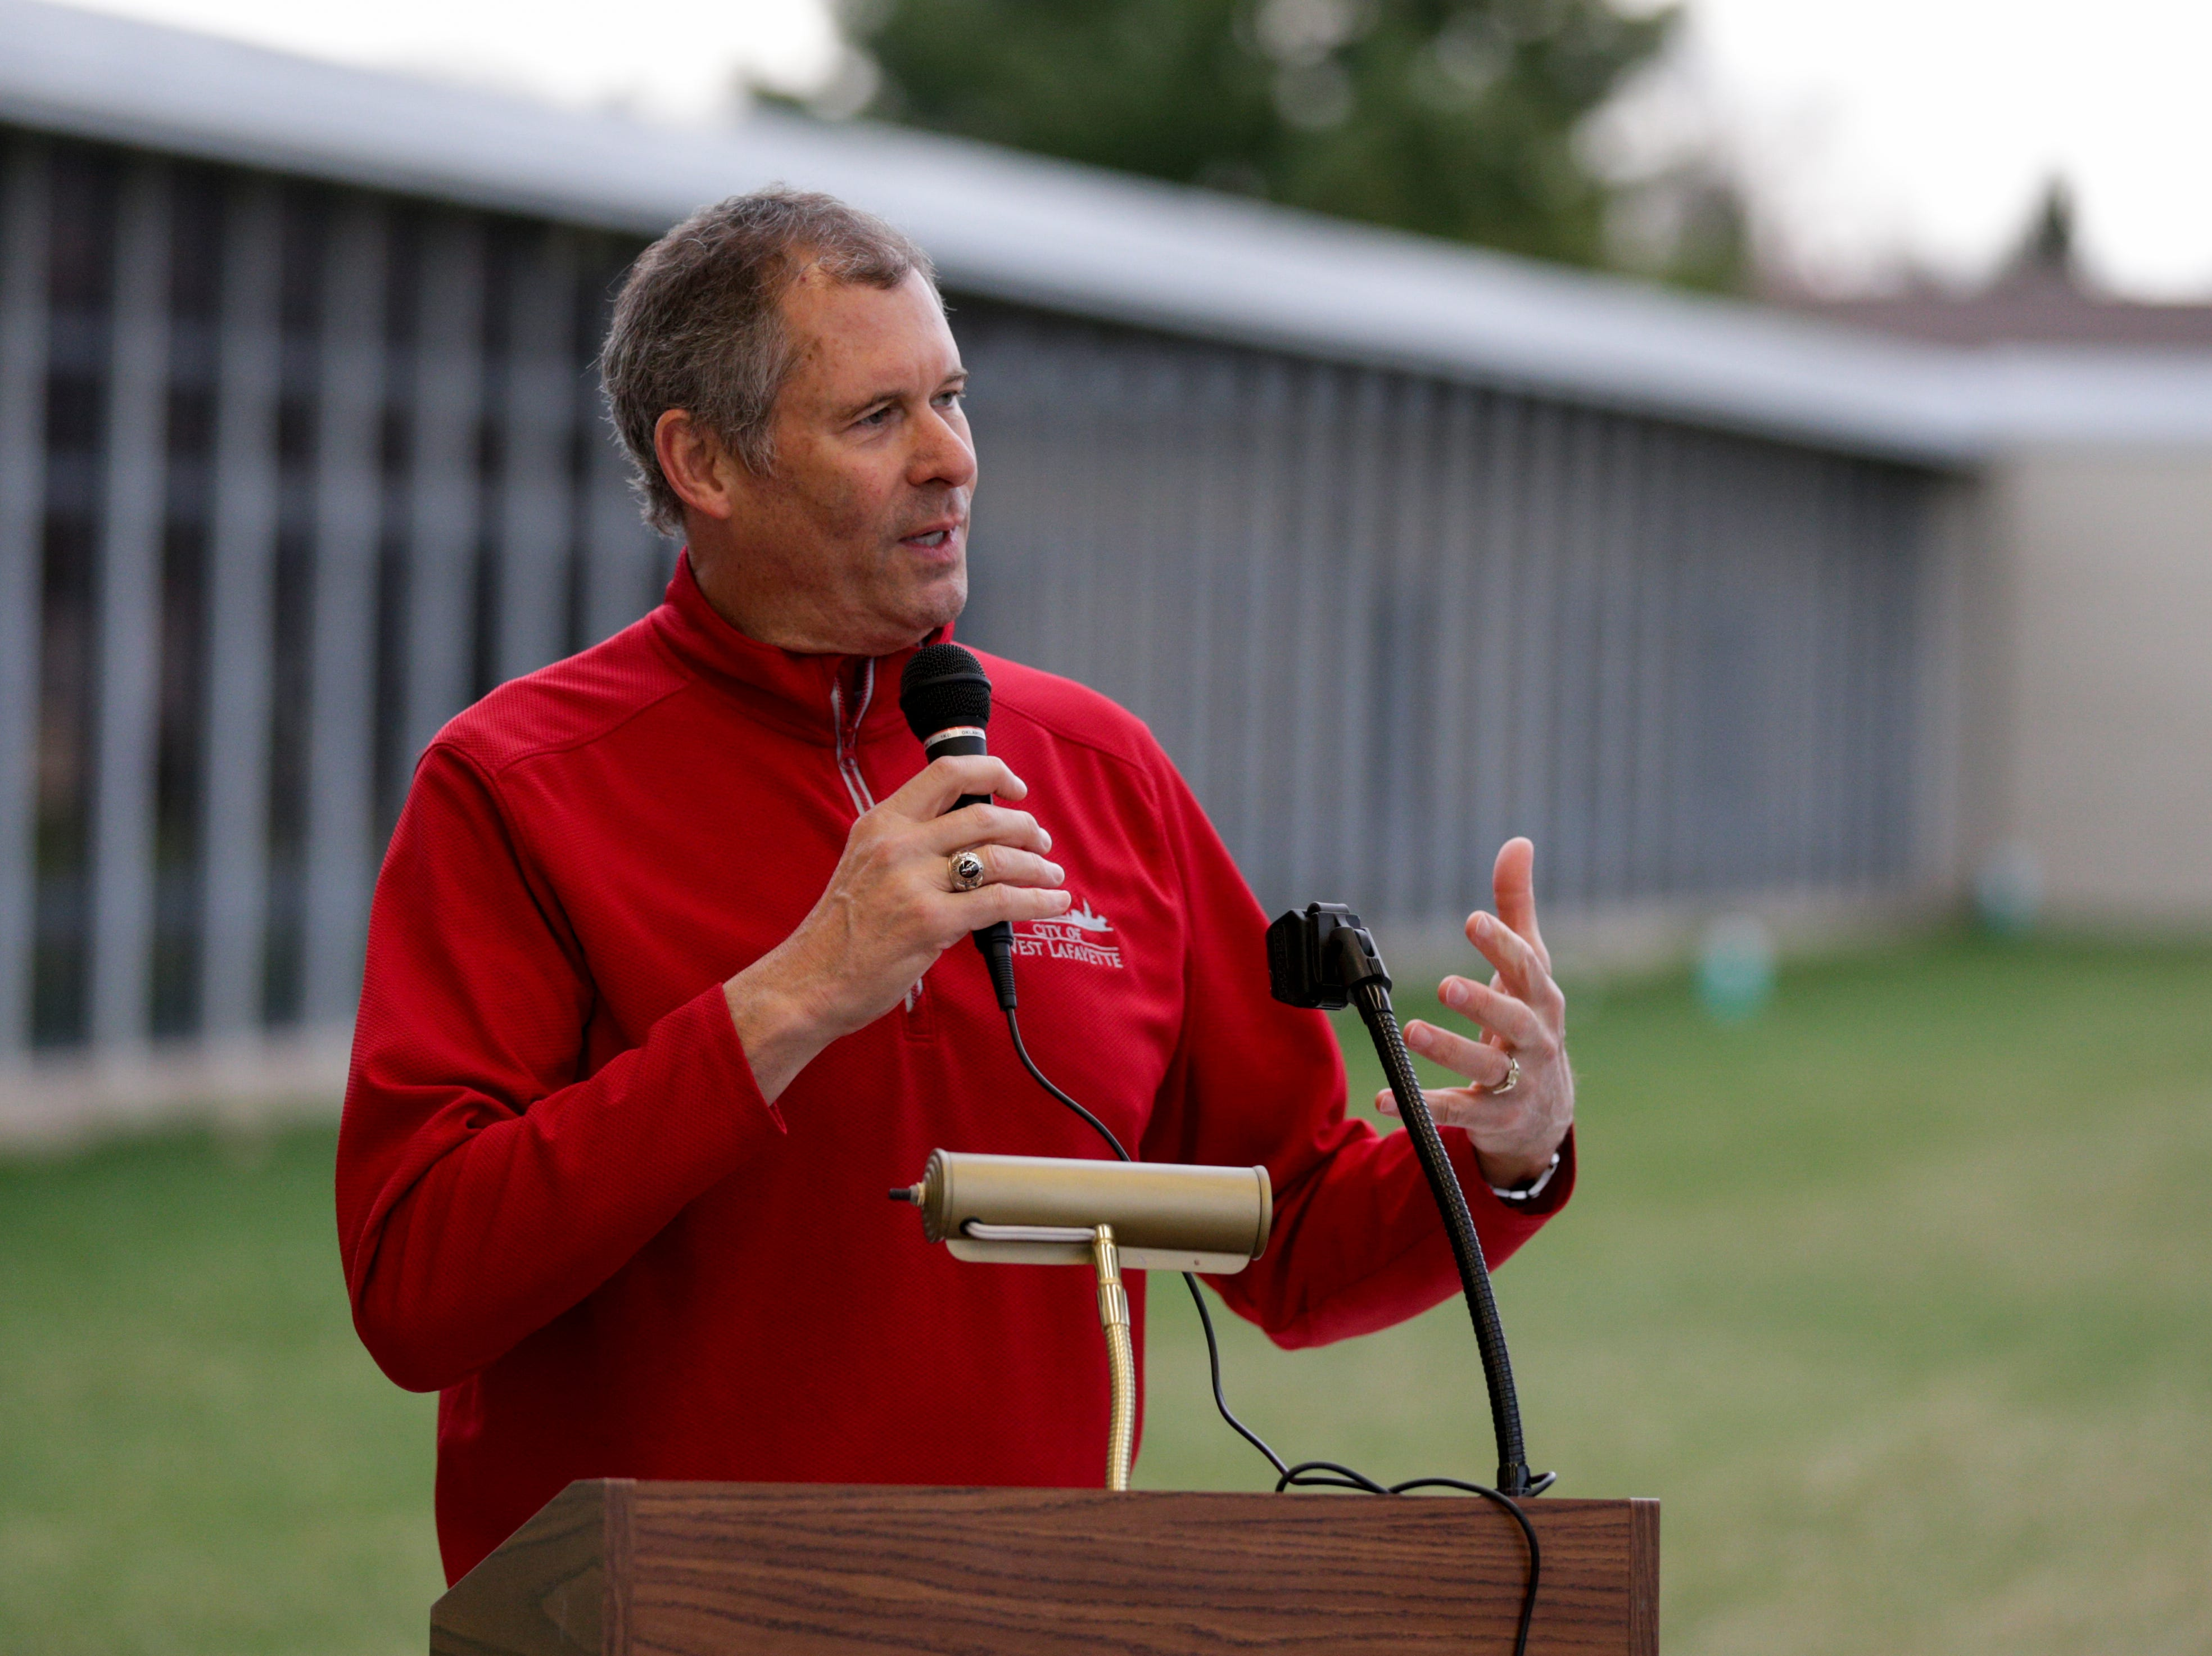 West Lafayette Mayor John Dennis speaks to a gathering of teachers, Wednesday, April 10, 2019, at Cumberland Elementary School in West Lafayette. Greater Lafayette teachers and community members gathered outside schools before walking in to demand teacher salary raises.(Nikos Frazier   Journal & Courier)